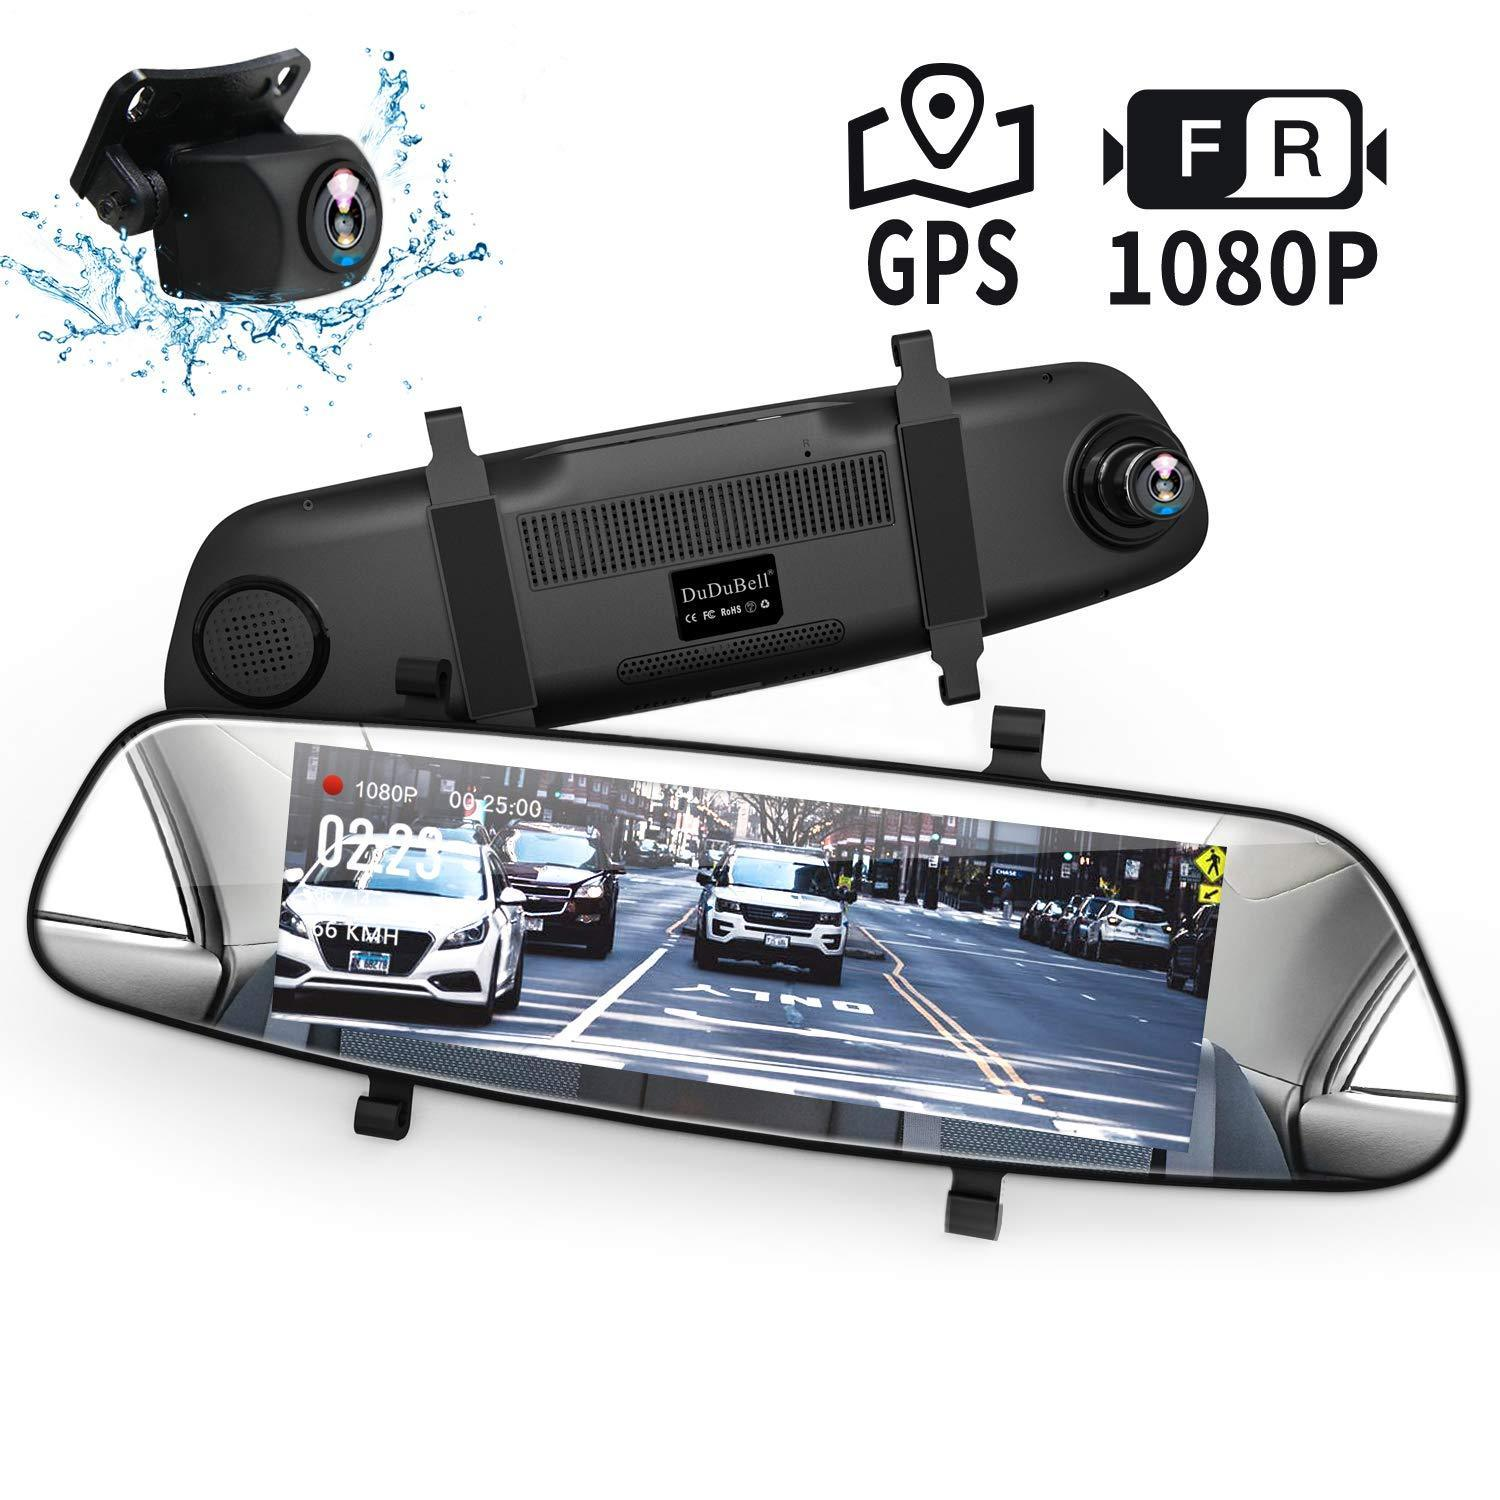 7.84 Inch LCD DVR Video Dash Cam Recorder| 1080P FHD CAMERA